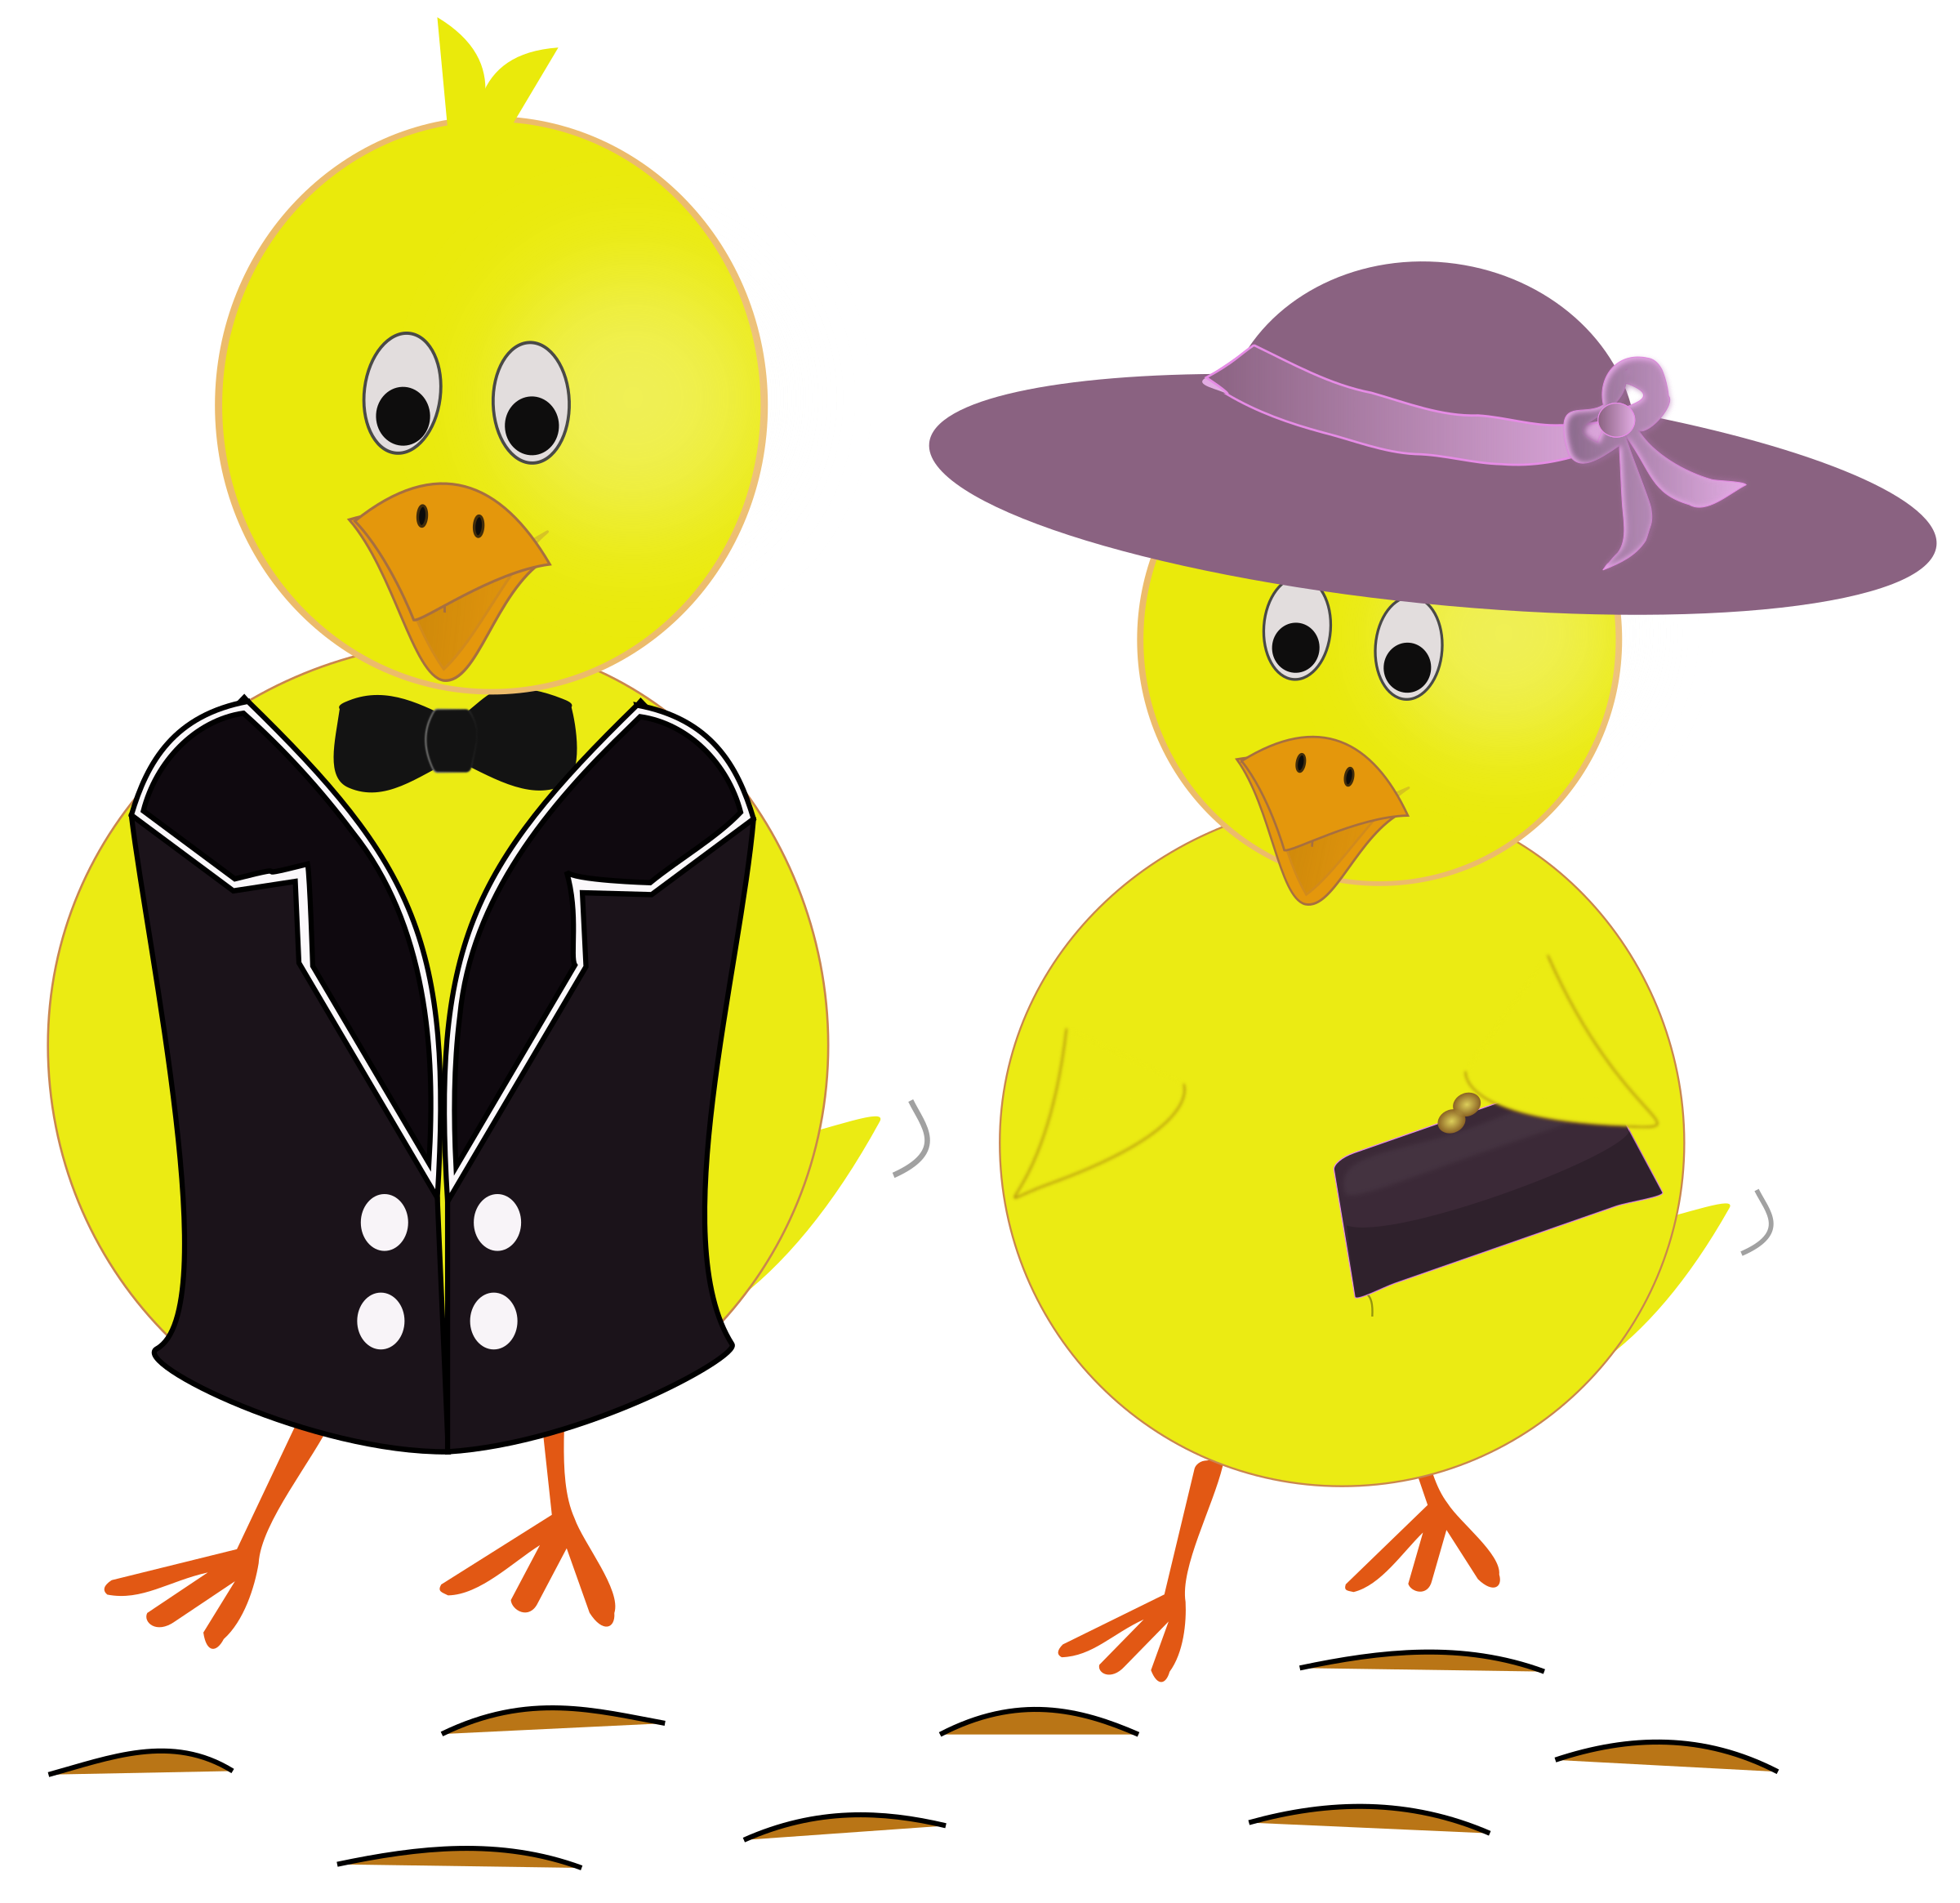 Sunday chicks big image. Ducks clipart easter